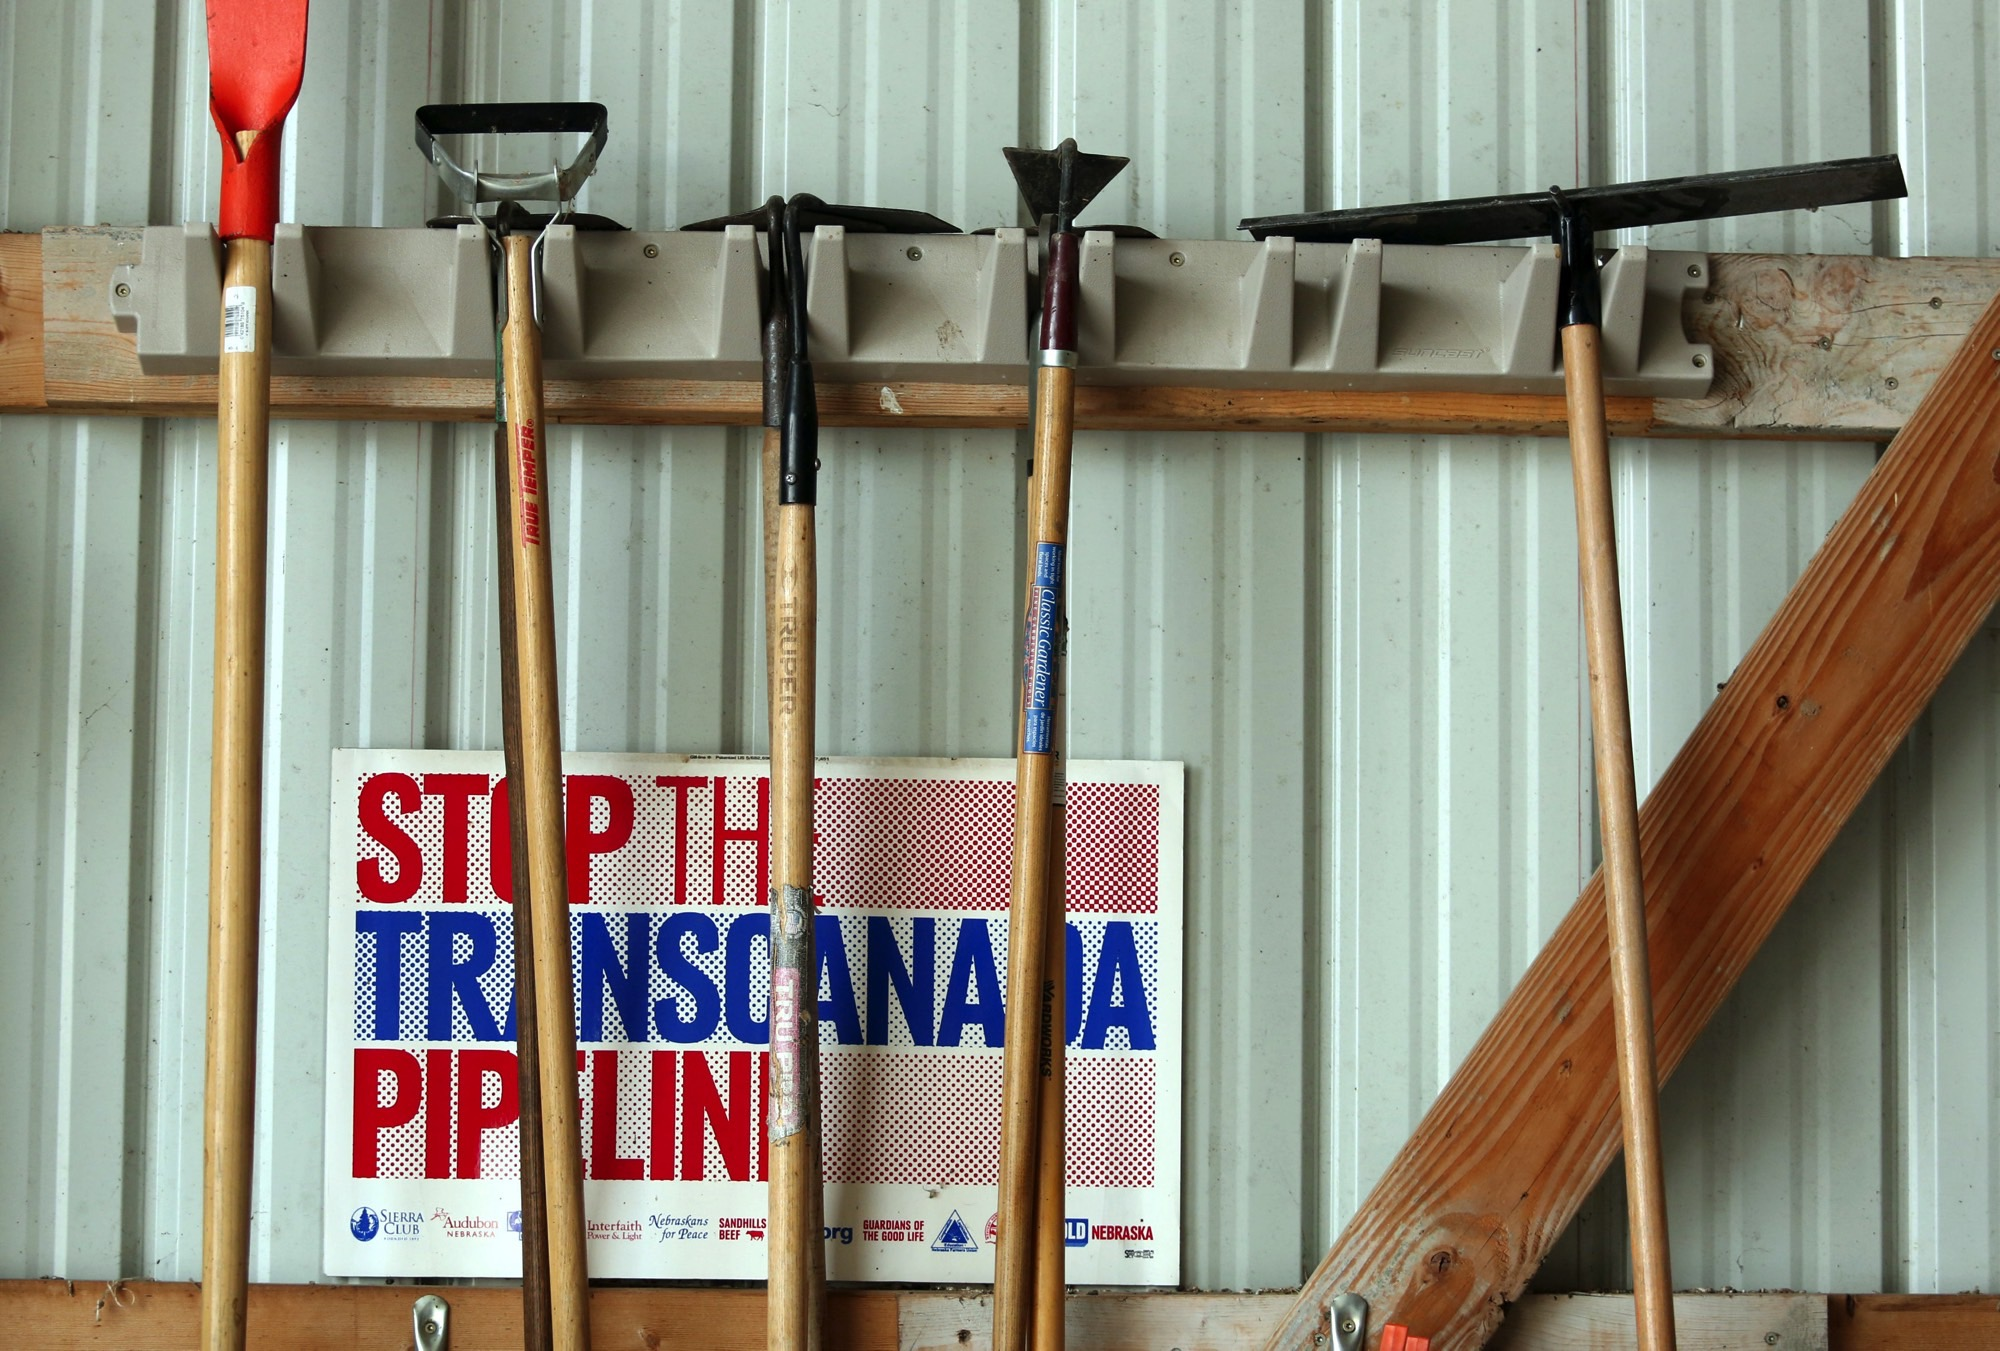 Various anti-pipeline signs line the walls of the machine shed of Art and Helen Tanderup, who are against the proposed Keystone XL Pipeline that would cut through the farm where they live near Neligh, Nebraska, US April 12, 2017. Credit: Reuters/Lane Hickenbottom